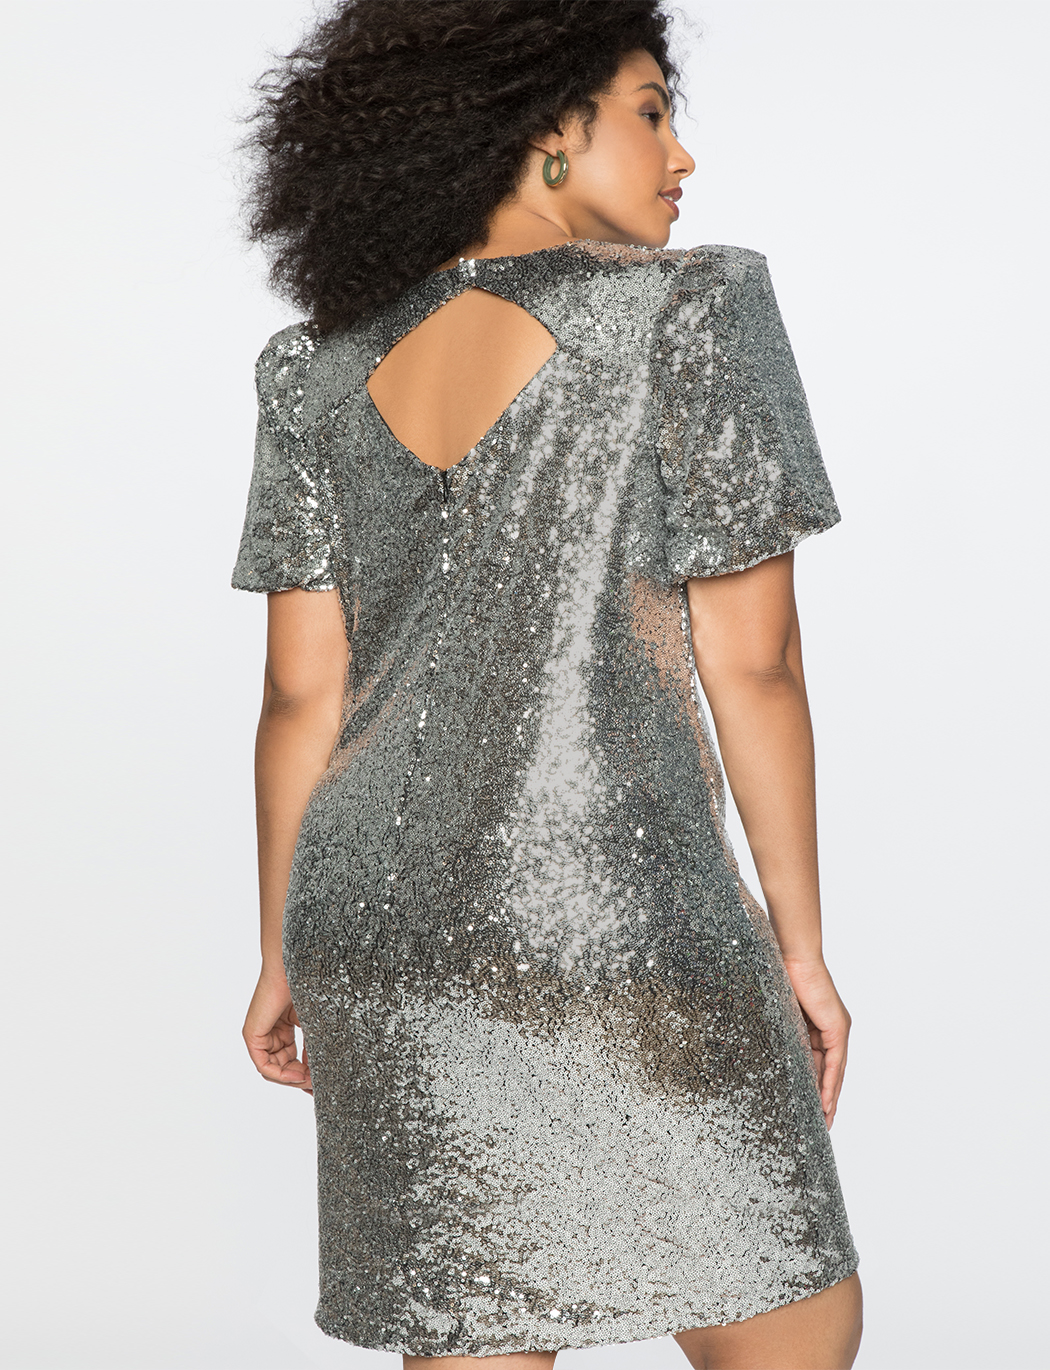 Puff Sleeve Sequin Dress